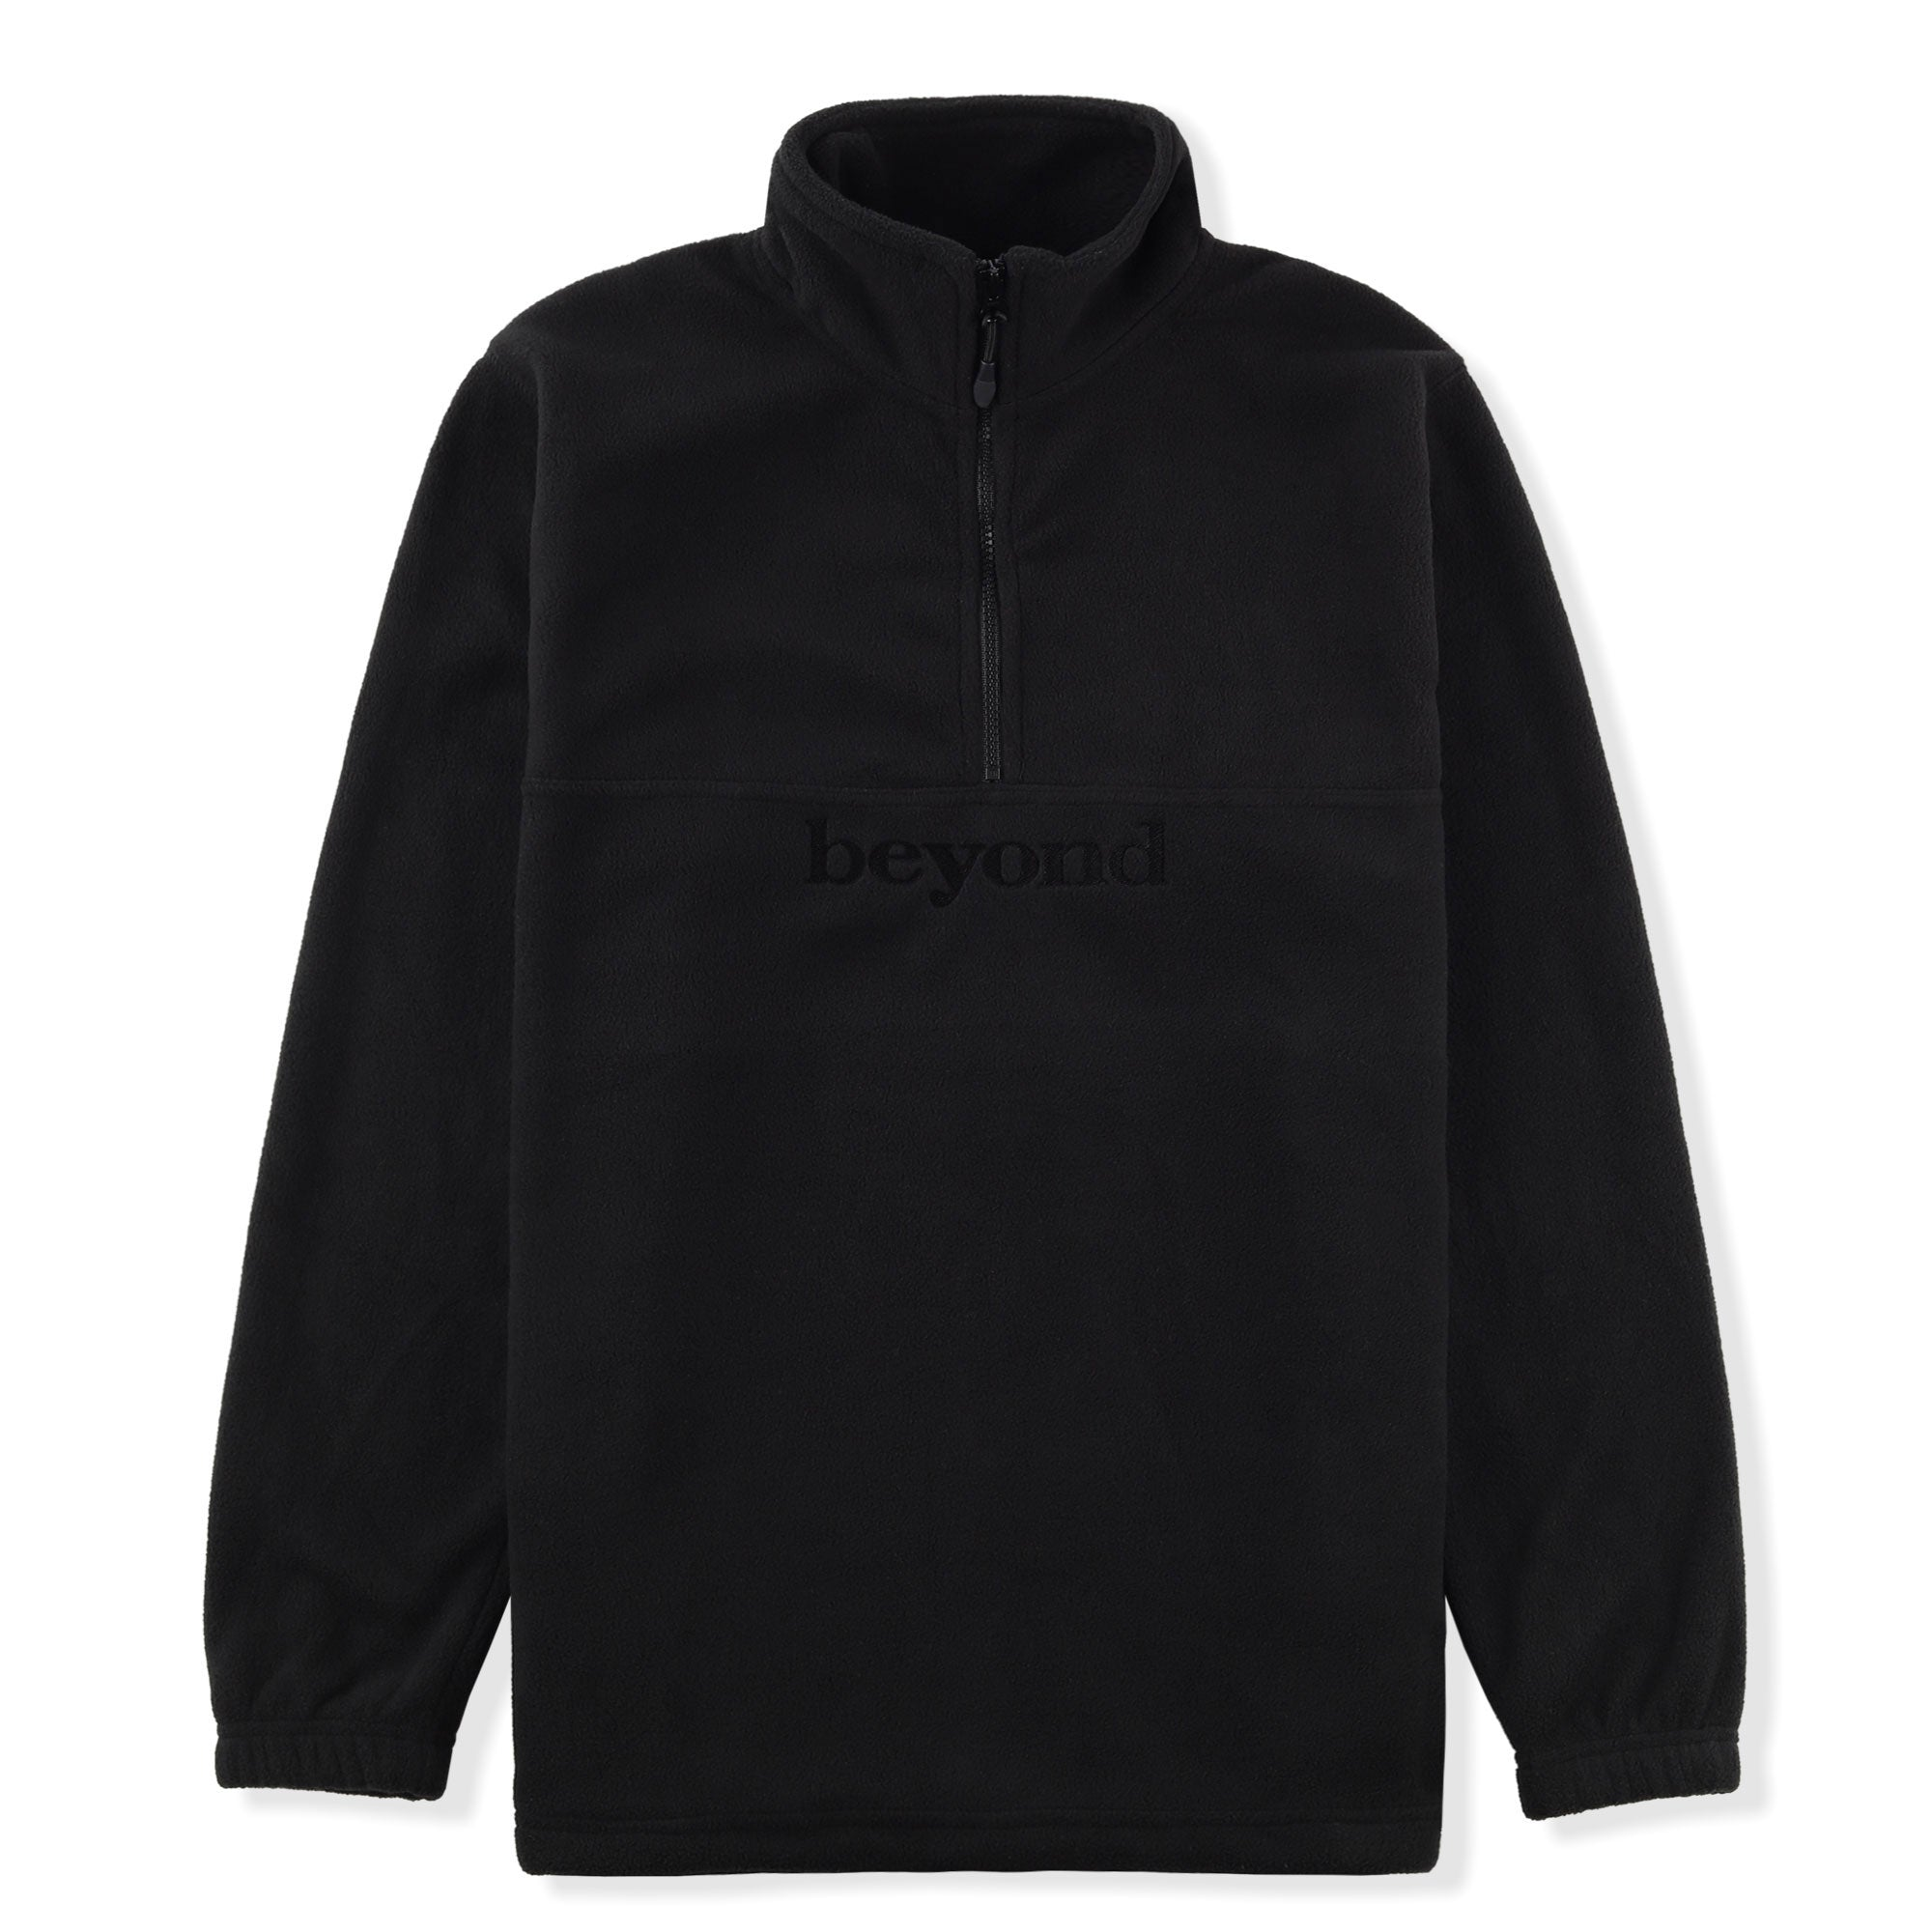 Beyond Embroidered 1/4 Zip Product Photo #1